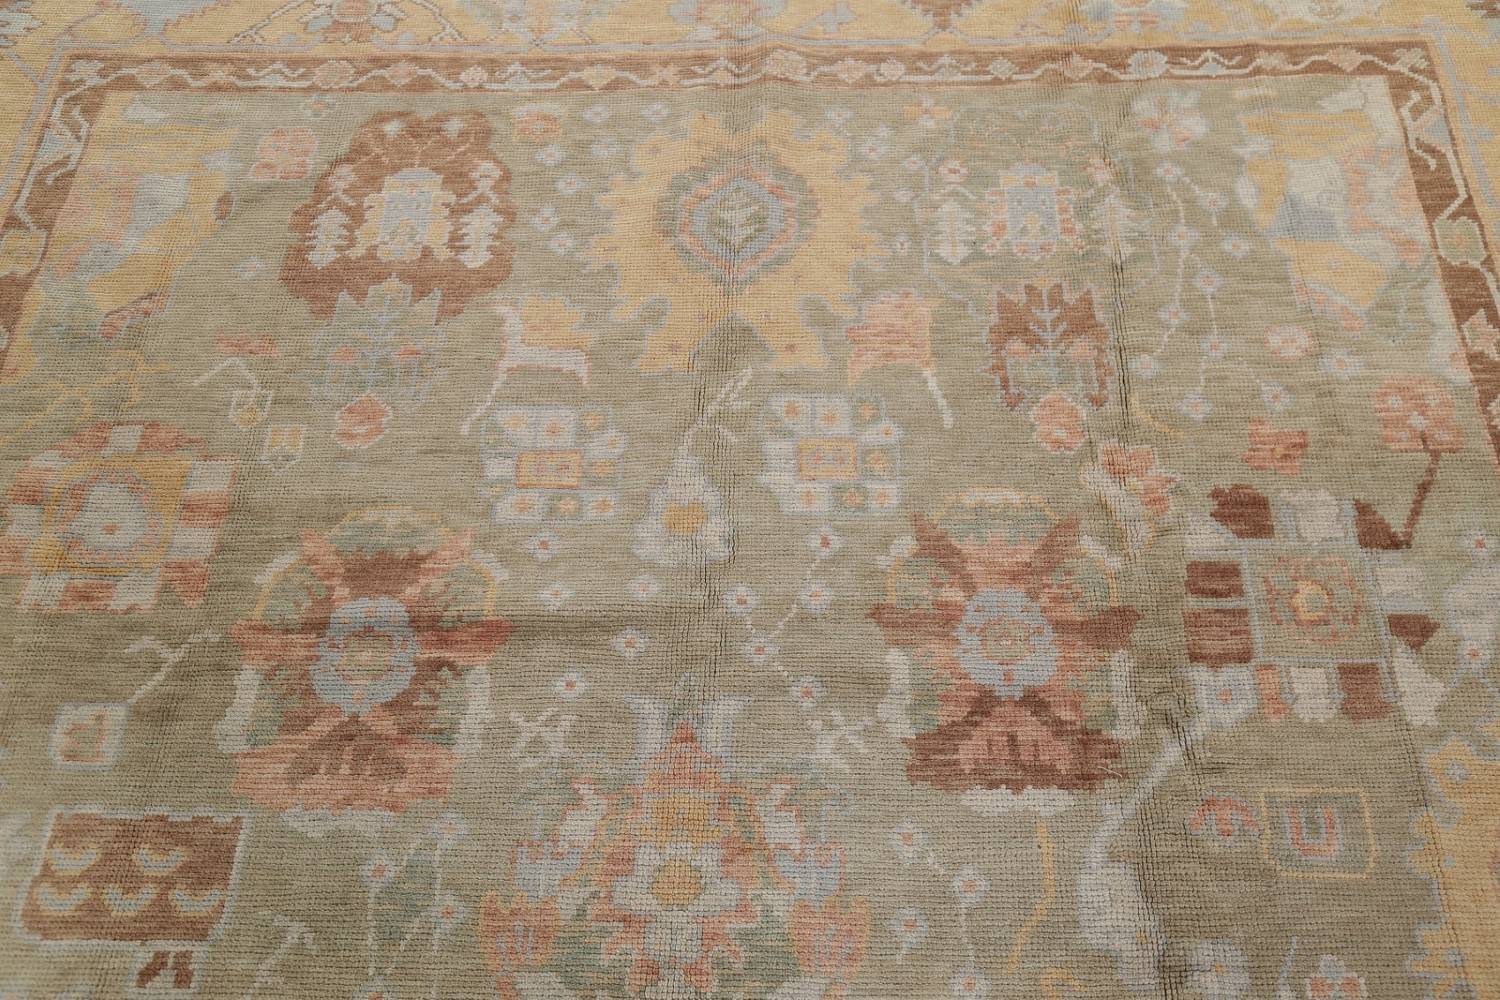 Vegetable Dye Muted Green Oushak Turkish Hand-Knotted Area Rug 9x12 image 13